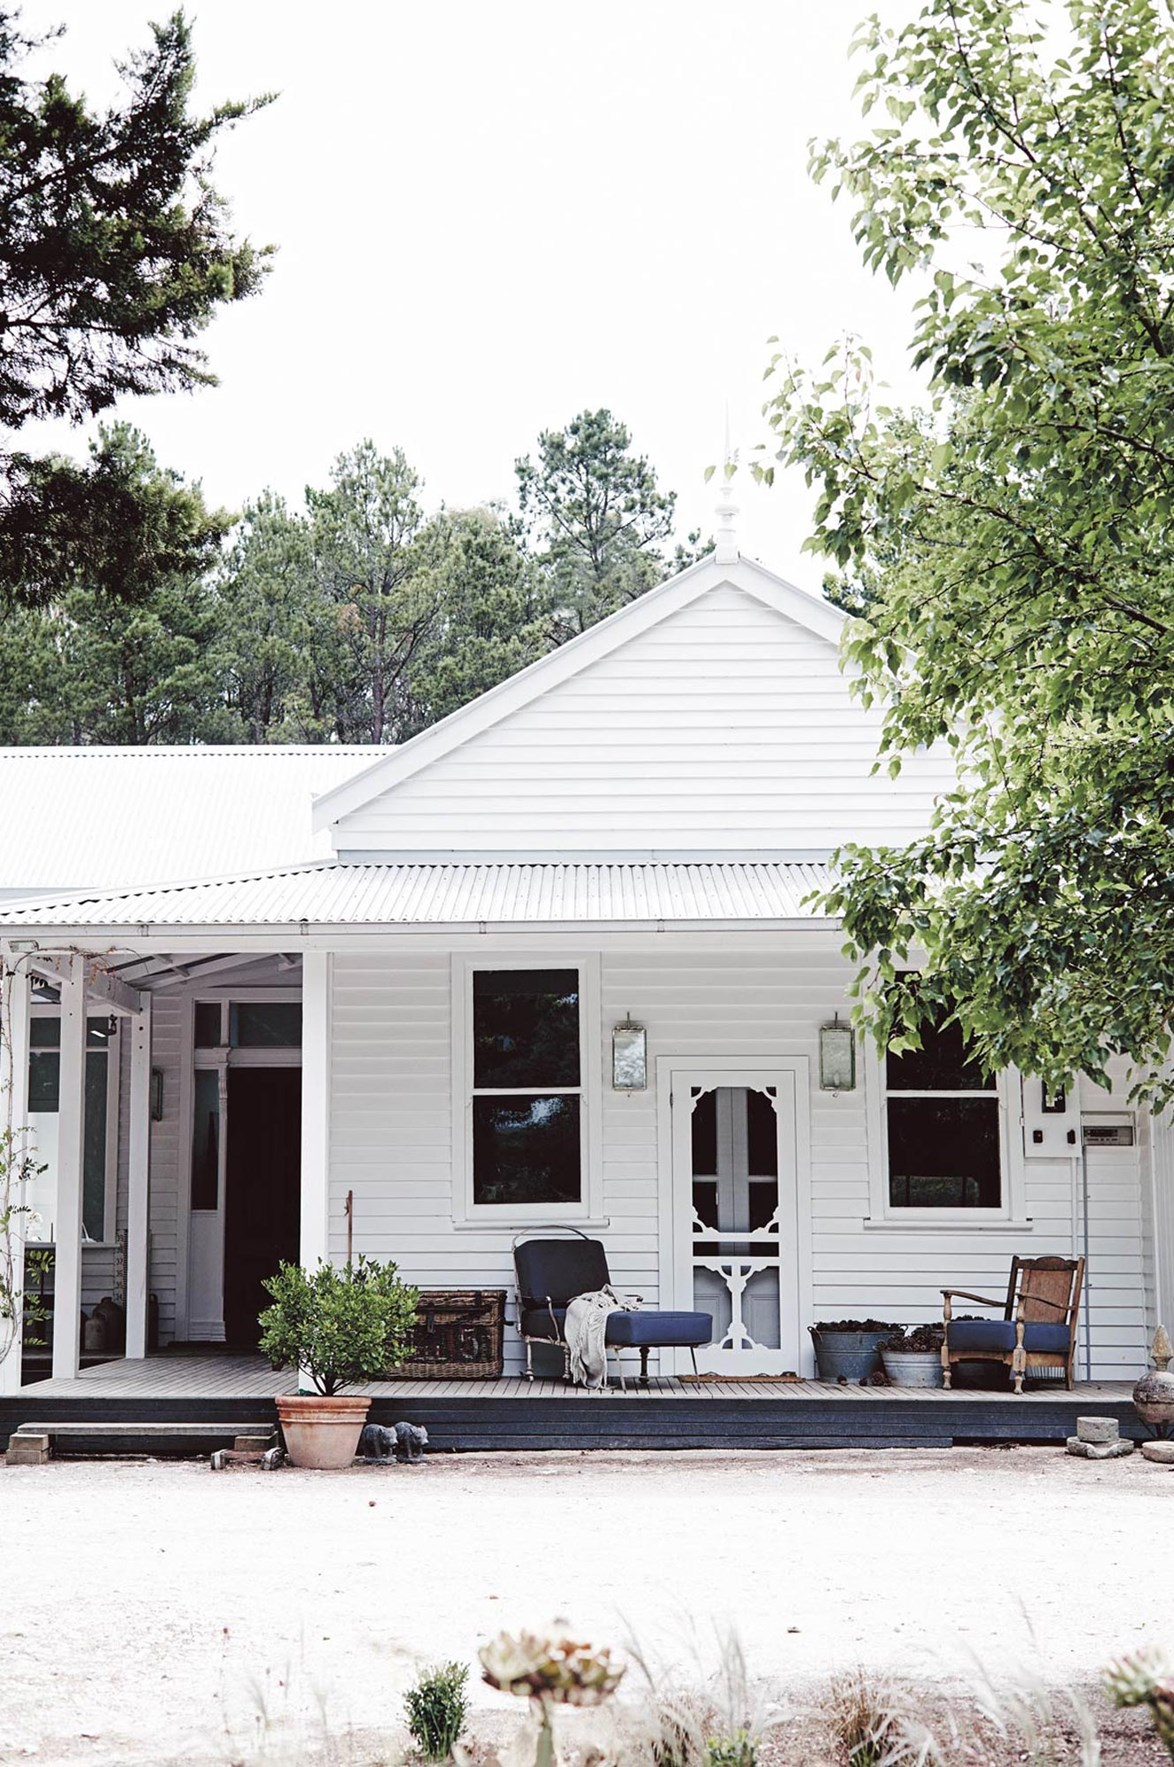 The pretty, white-painted facade of horticulturalist Natasha Morgan's 1800s-era timber cottage in Spargo Creek, Victoria. The building was once a rural post office.